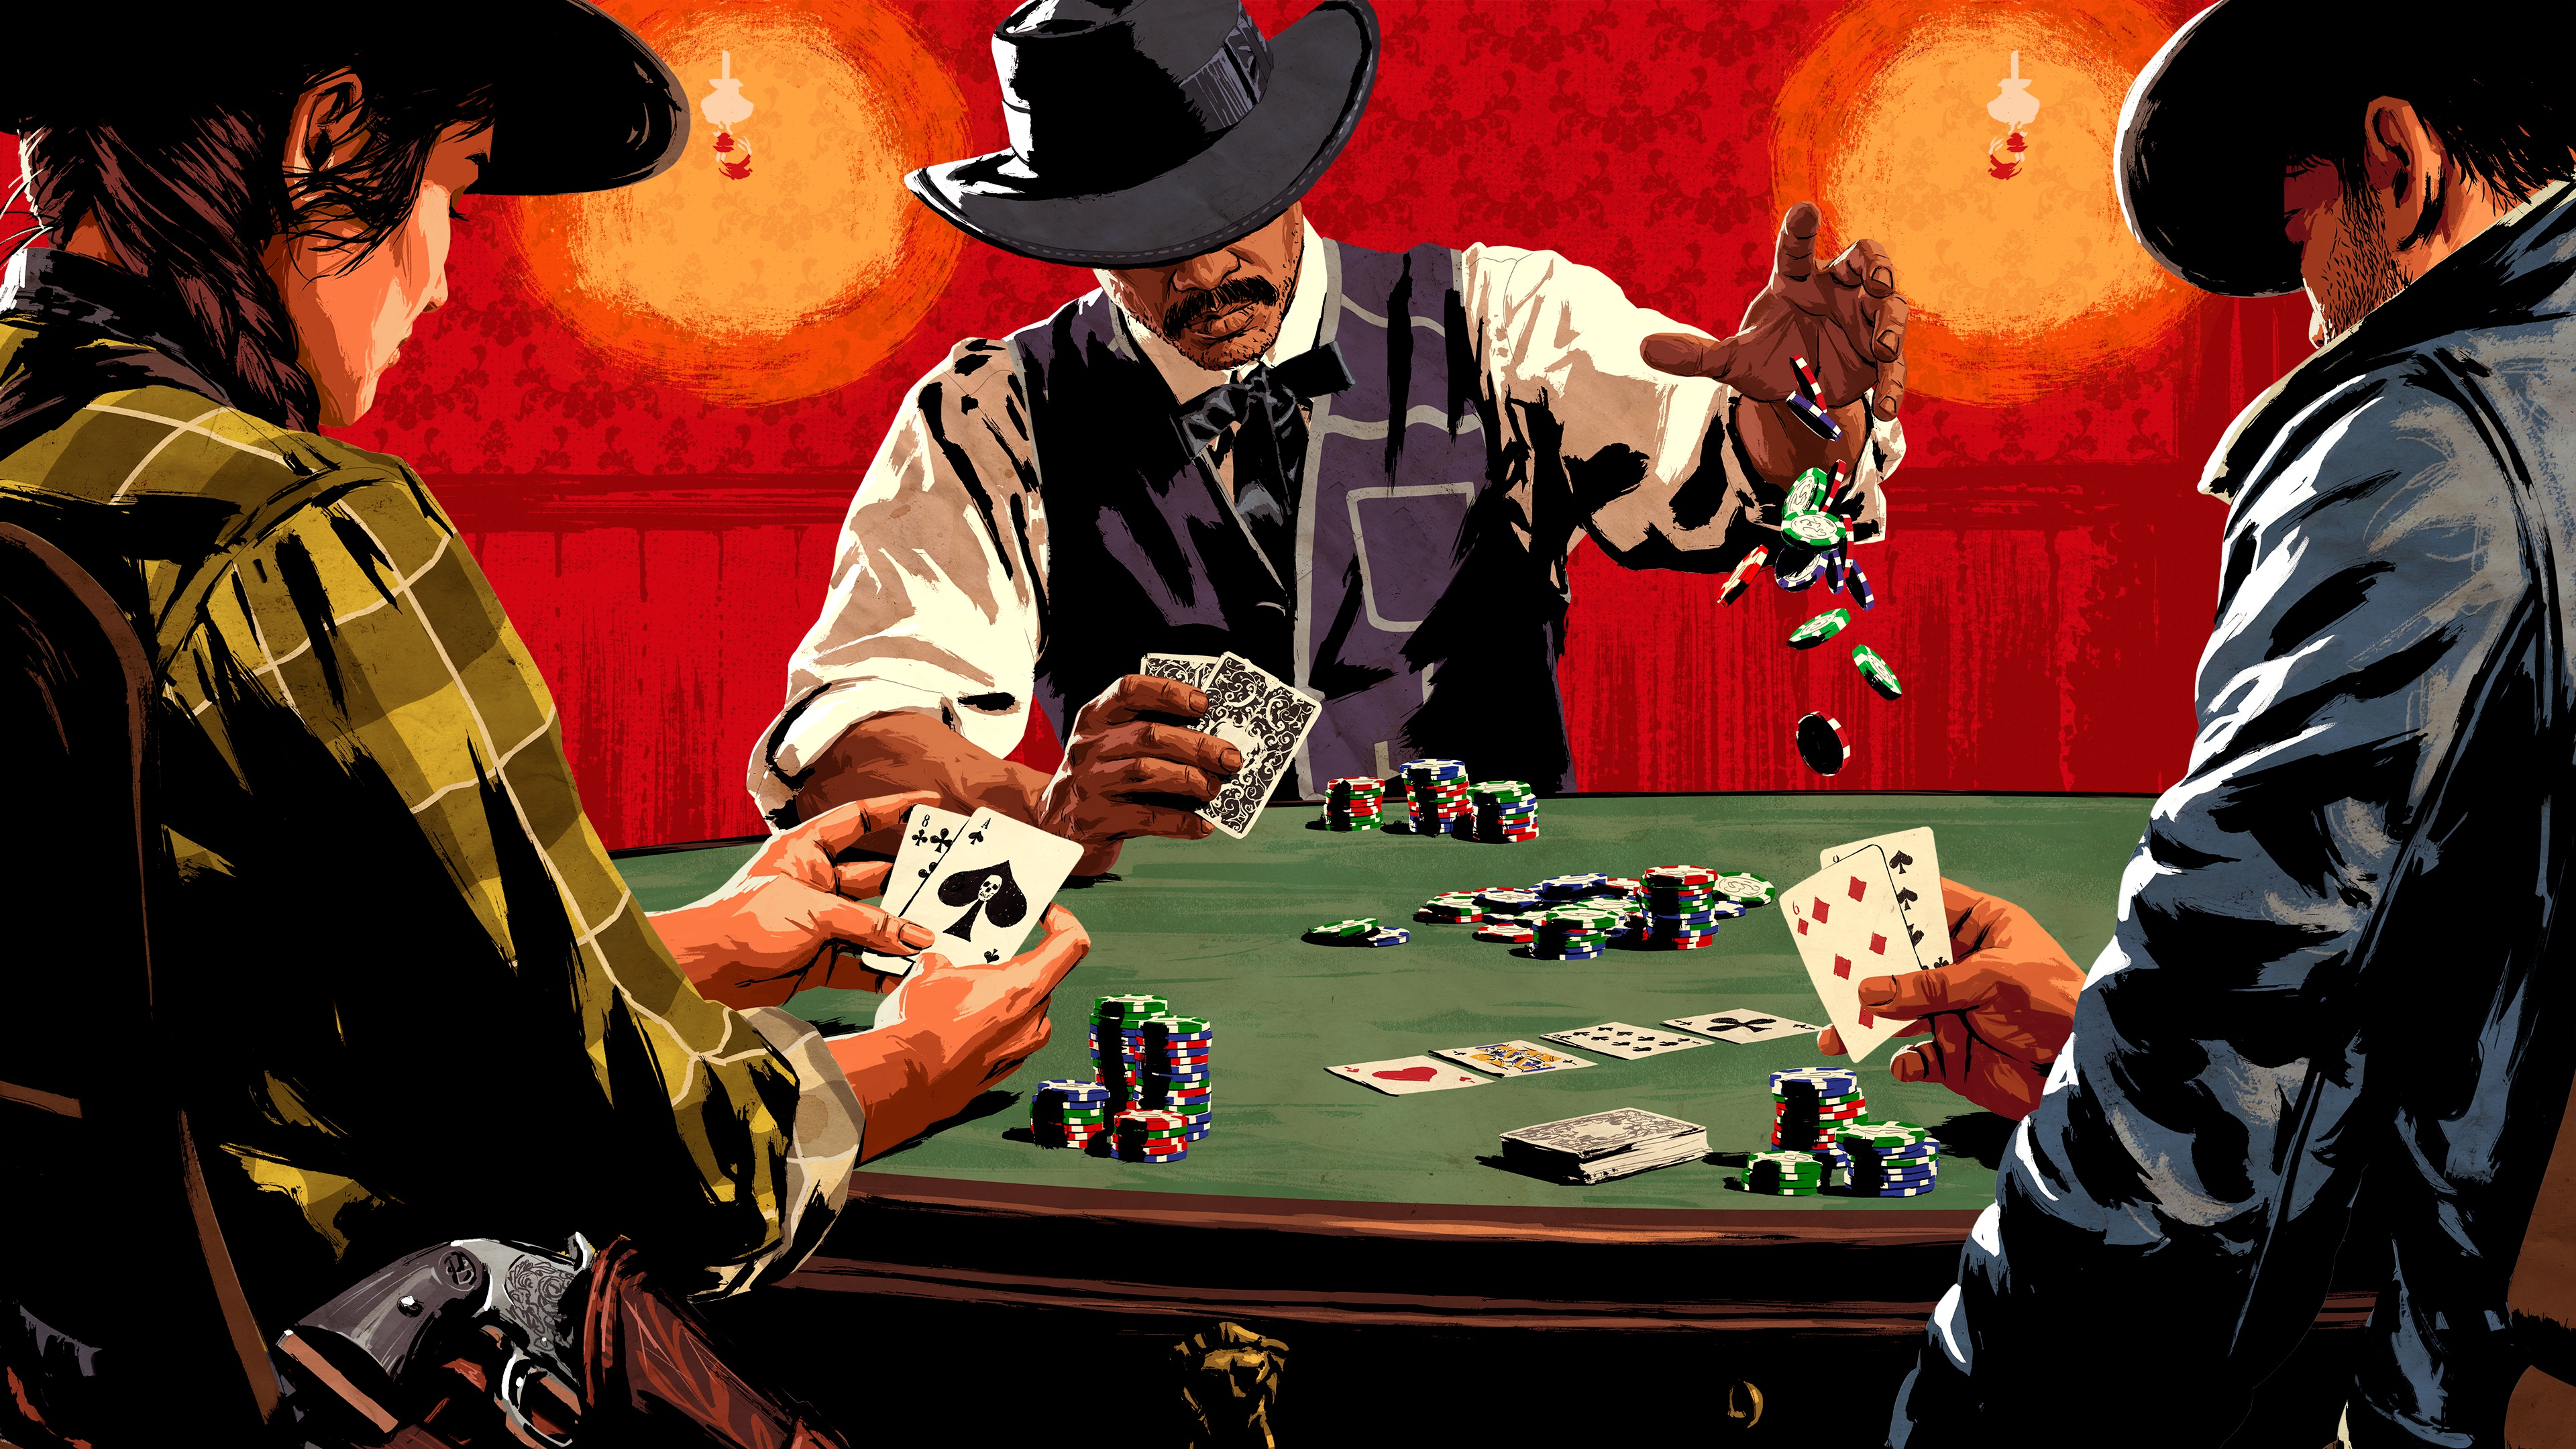 Wallpaper Red Dead Redemption 2 Poker Hat Vdeo Game Table 3840x2160